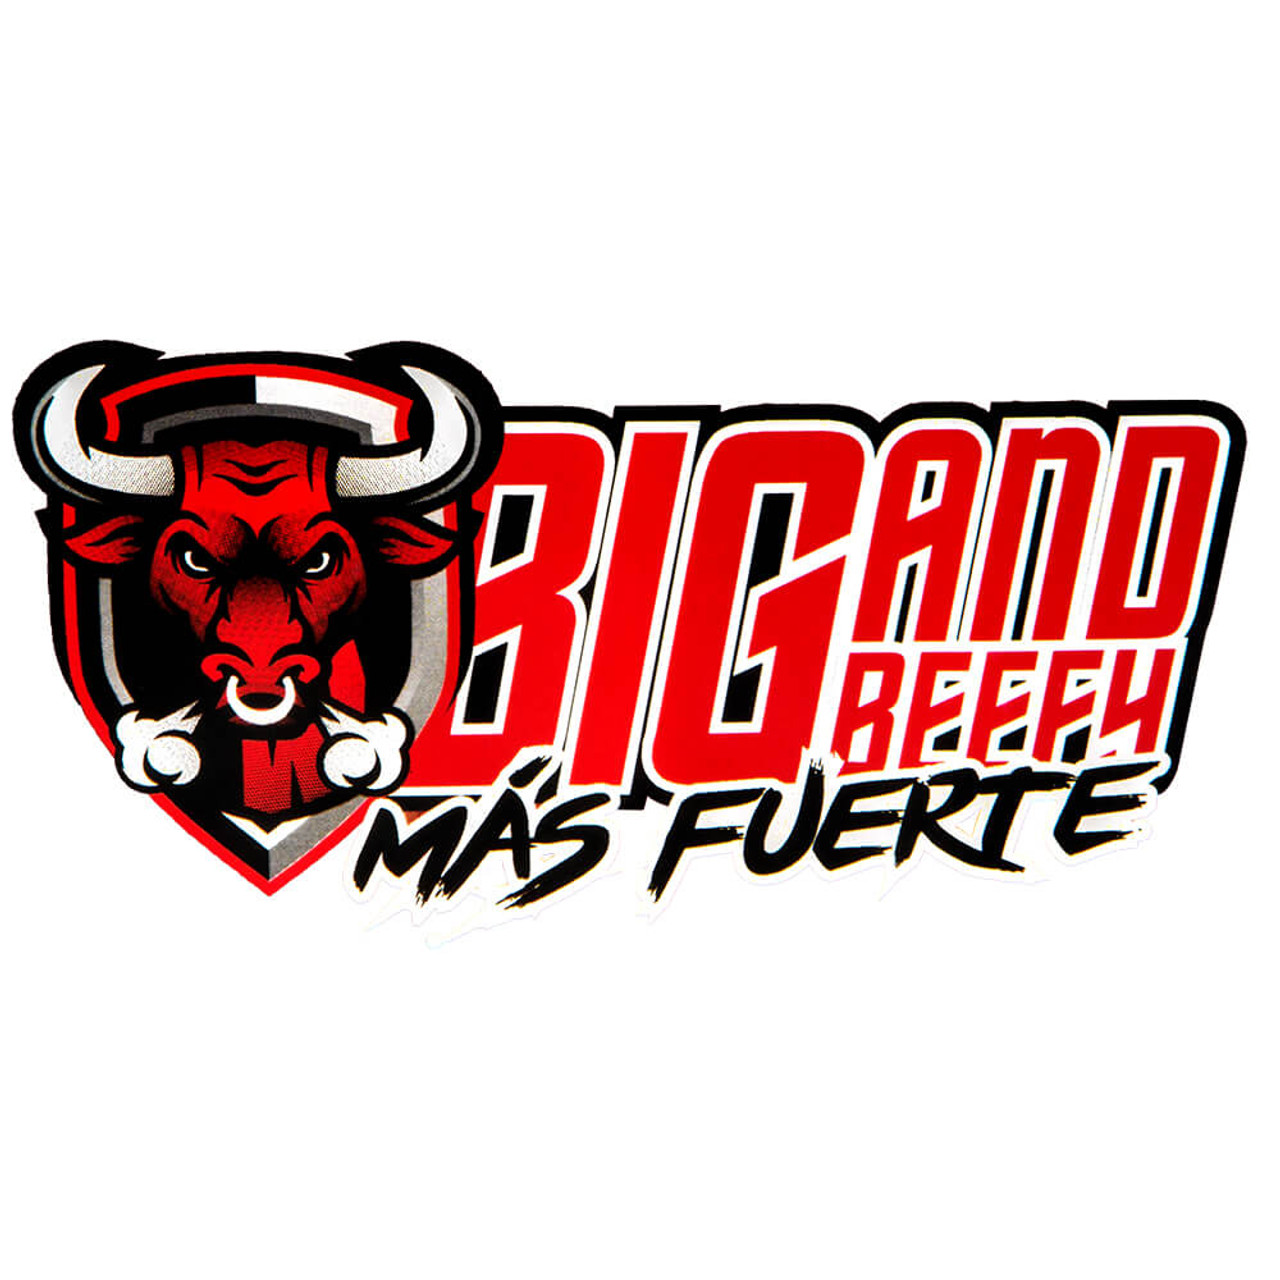 Big and Beefy Mas Fuerte No. 670 Cigars - 6 x 70 (Bundle of 10)